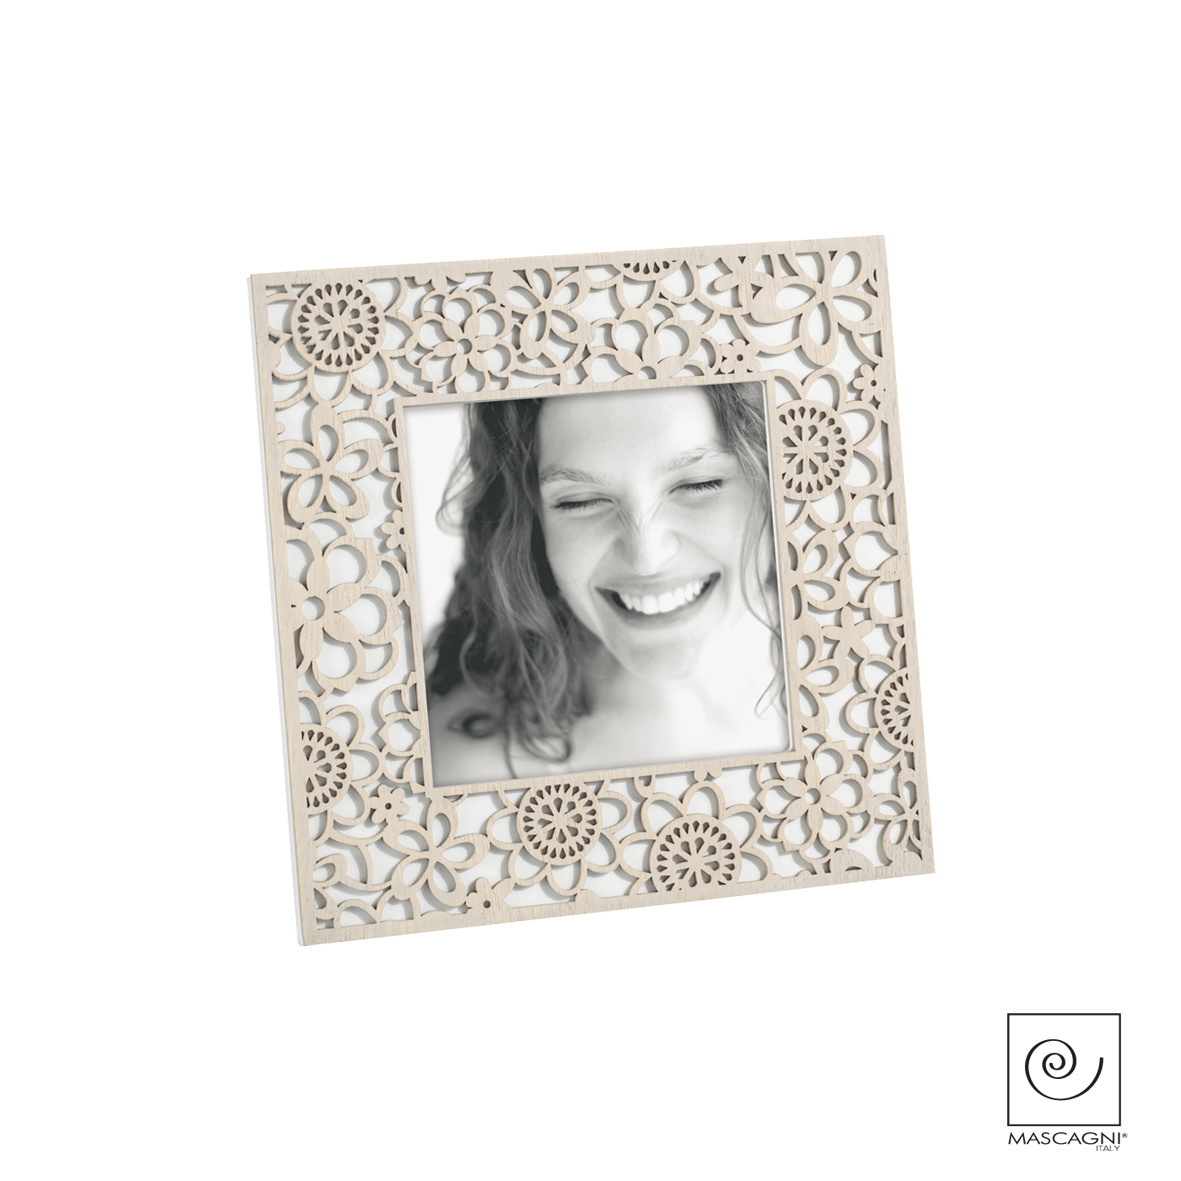 Art Mascagni A772 PHOTO FRAME 13X13 - COL. NATURAL